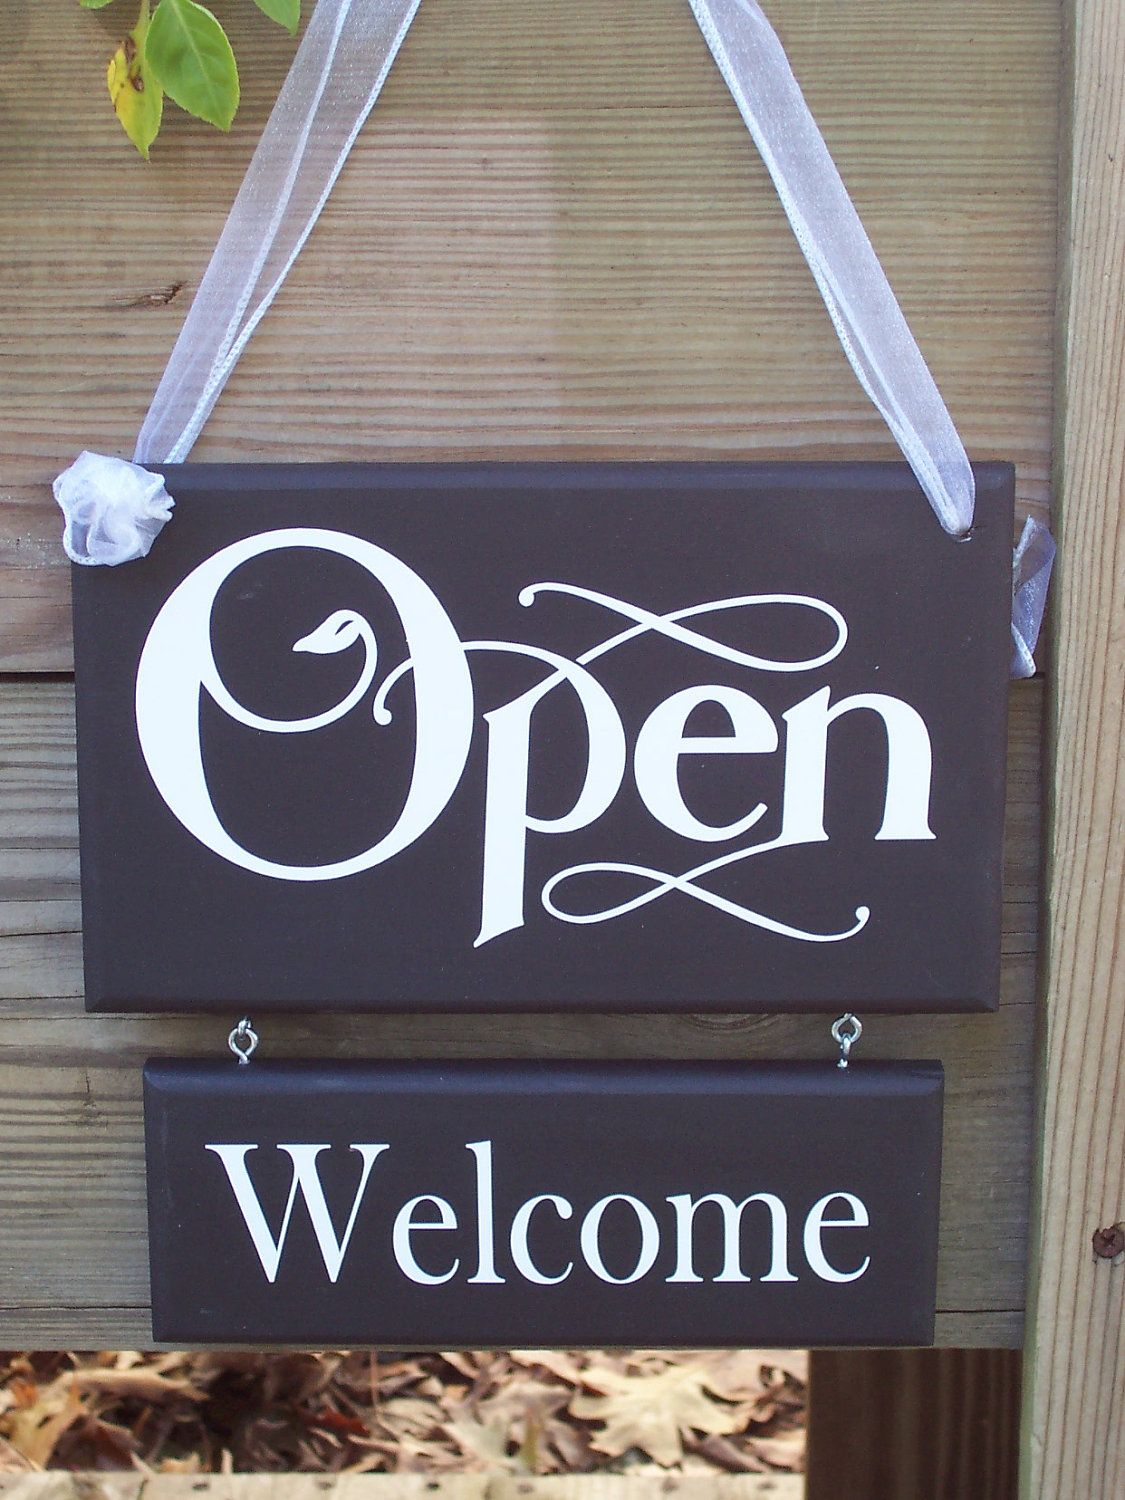 Open Store Doors open welcome closed please come again wood sign vinyl home